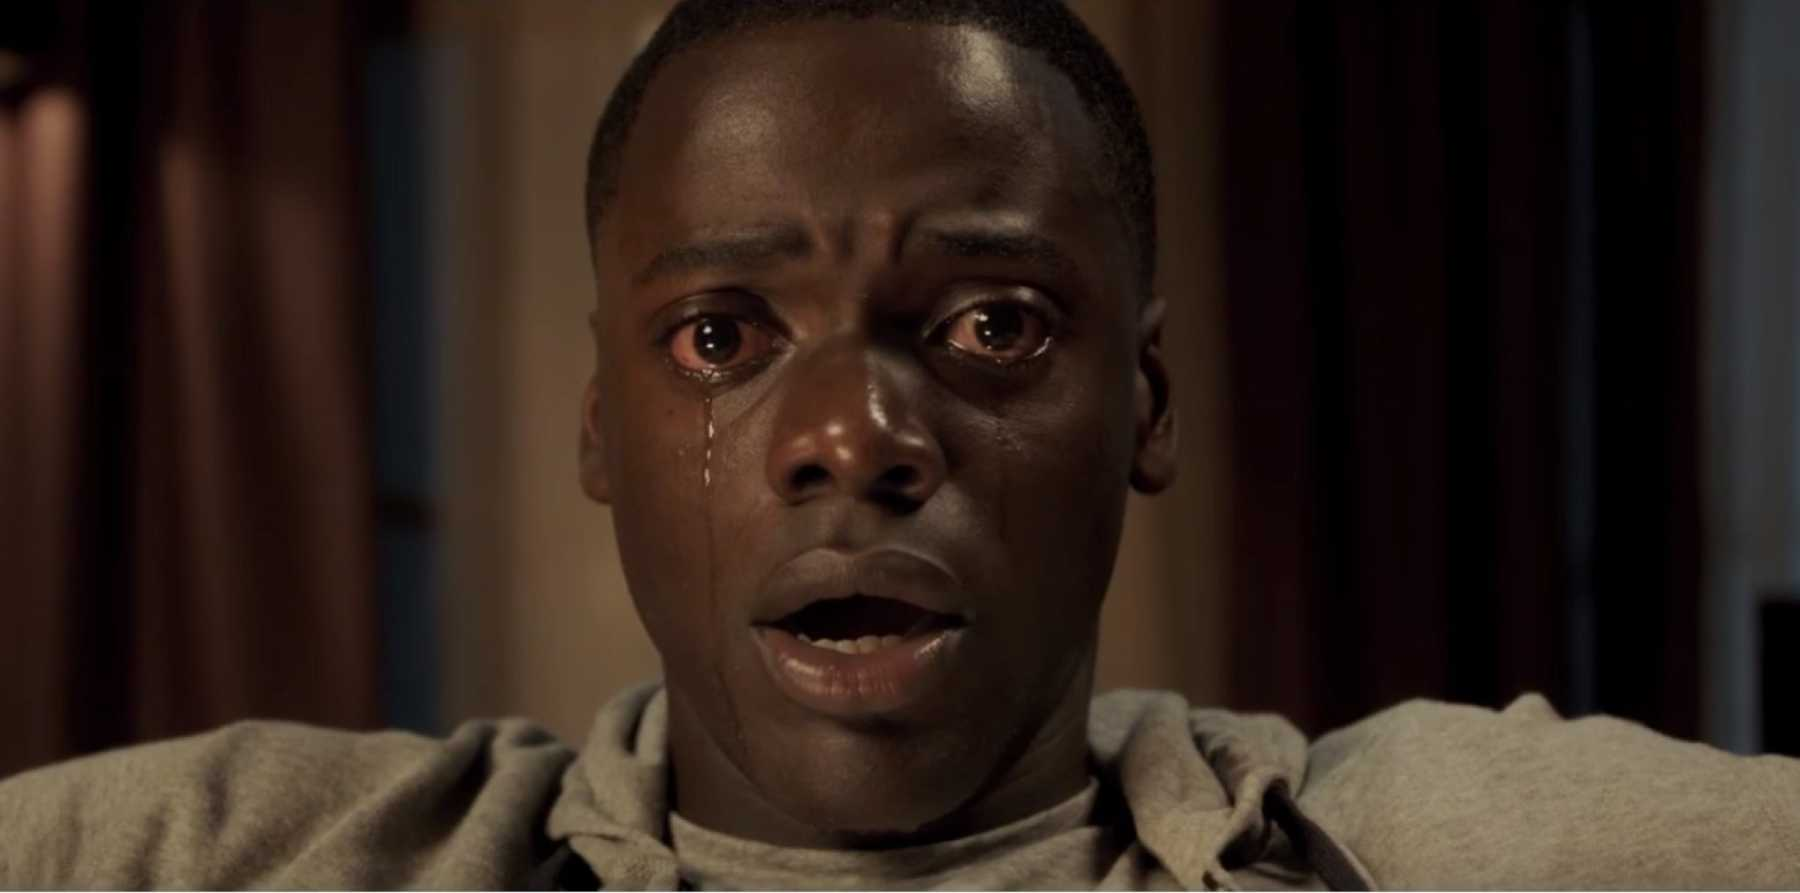 'Get Out' Entering The Golden Globe Race As A Comedy Exposes The Limitations Of Award Show Categories | Get Out